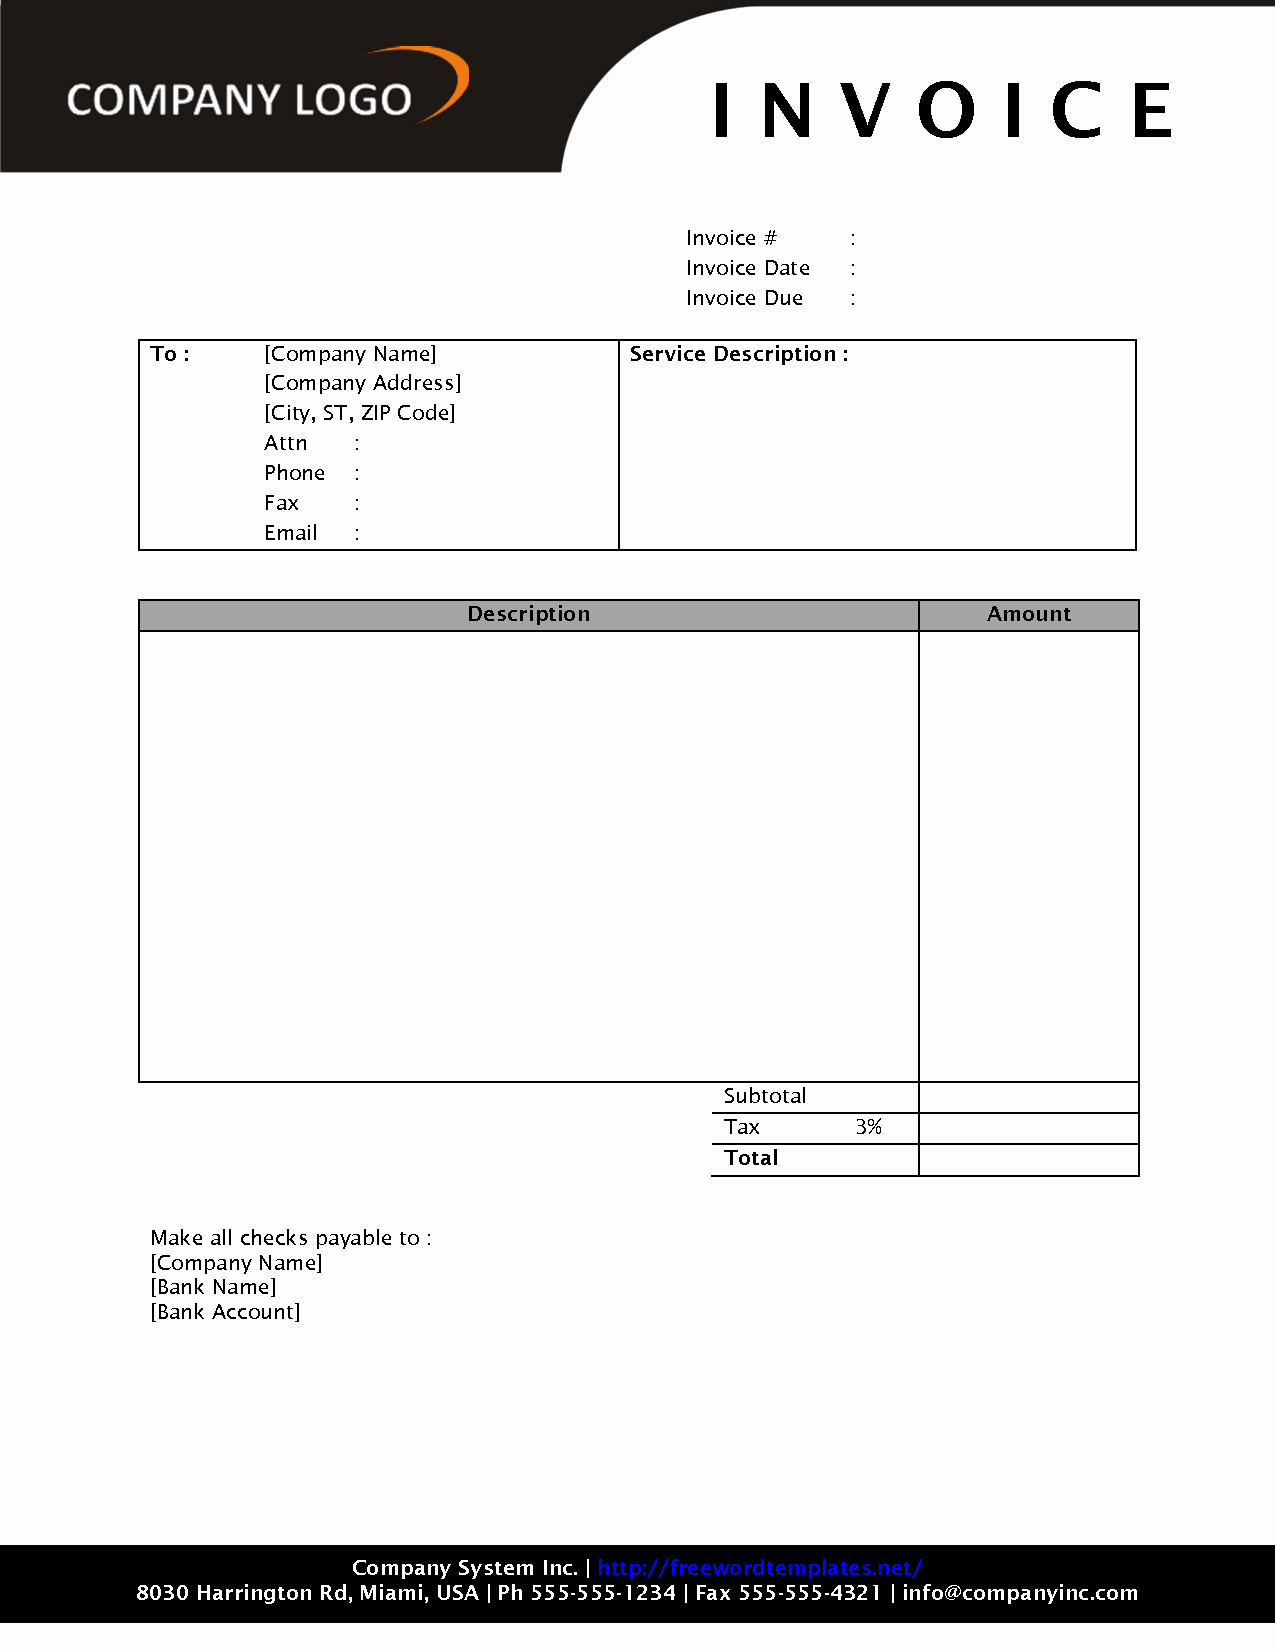 Free Invoice Template for Word Inspirational Download Invoice Template Invoice Design Inspiration